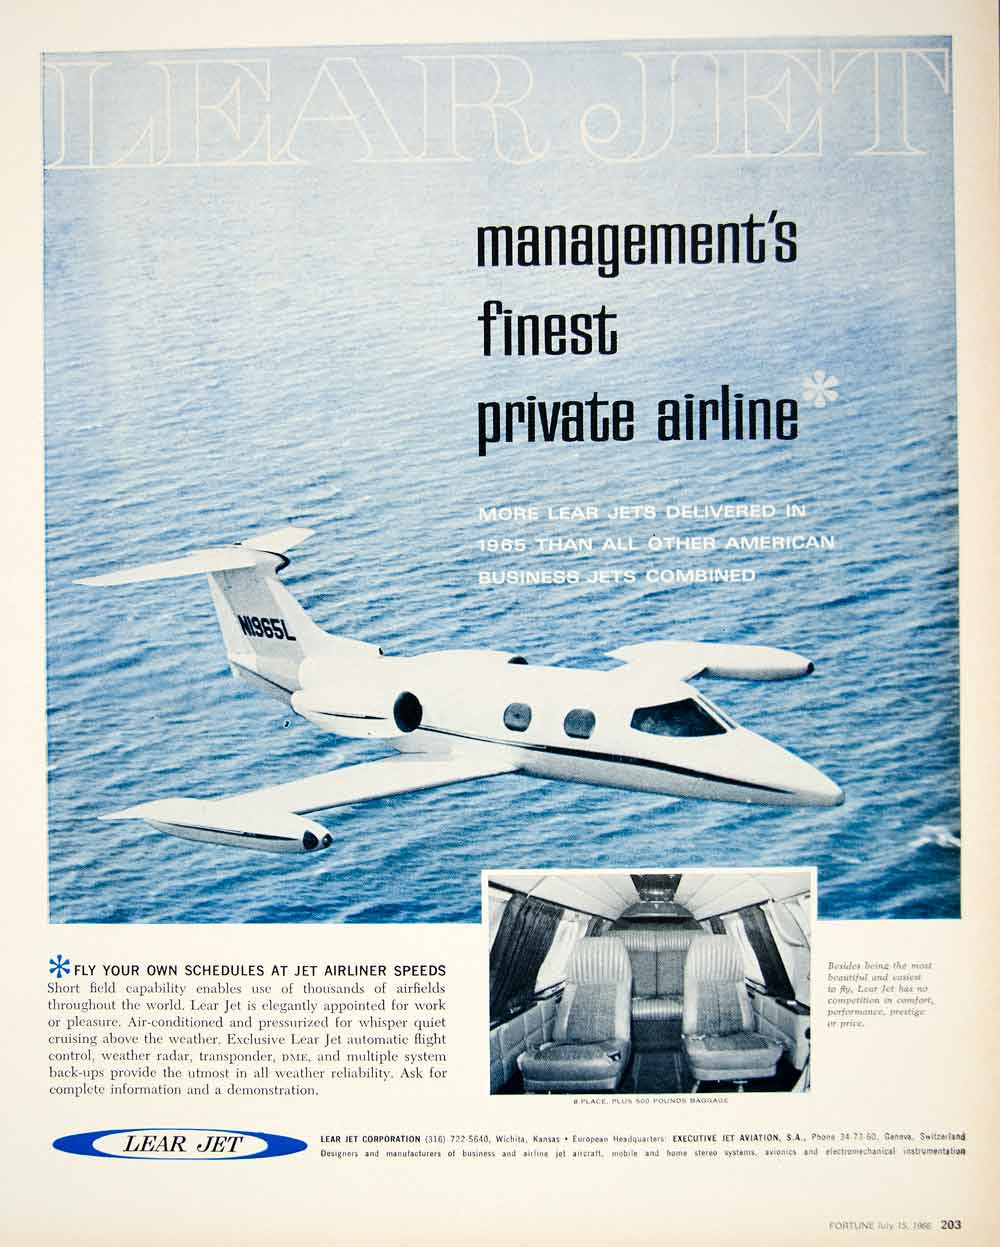 Private jet interior furnished like a vintage train aviation - 1966 Ad Vintage Lear Jet Private Business Airplane Interior Cabin Plane Yfm3 Period Paper